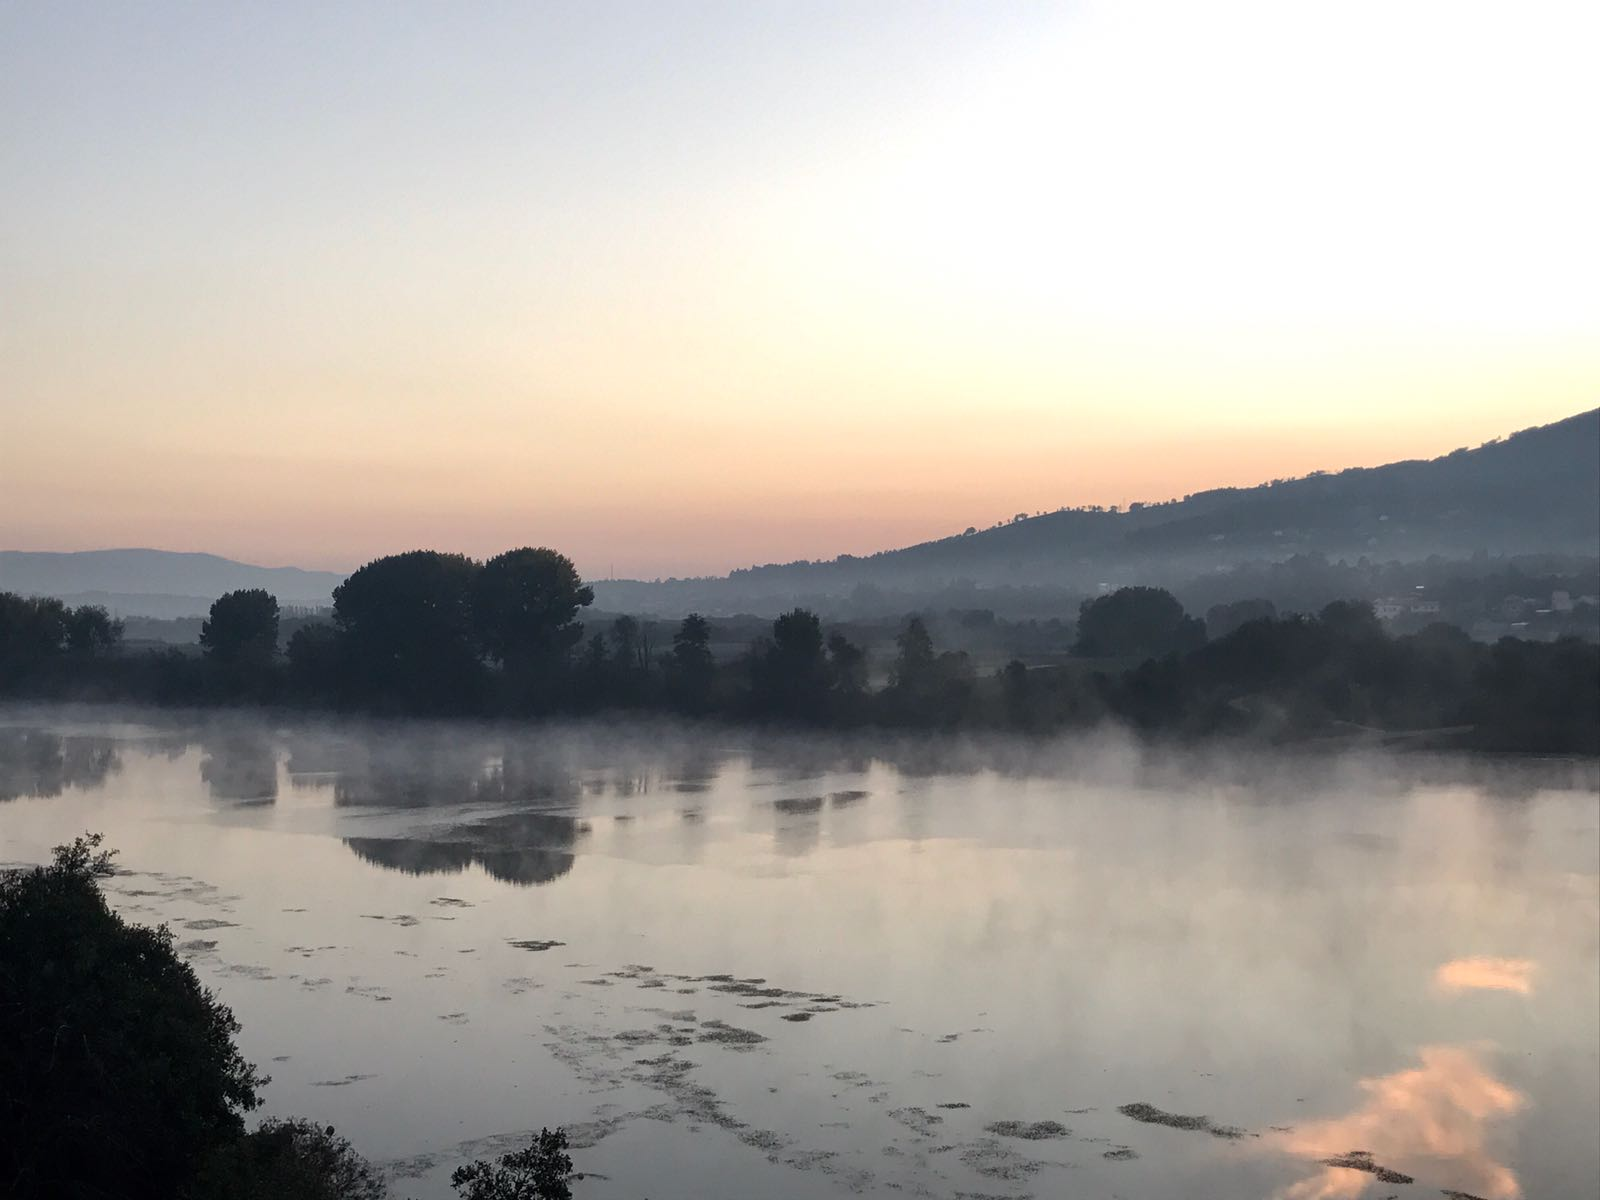 The miňo river at sunrise, from Tui